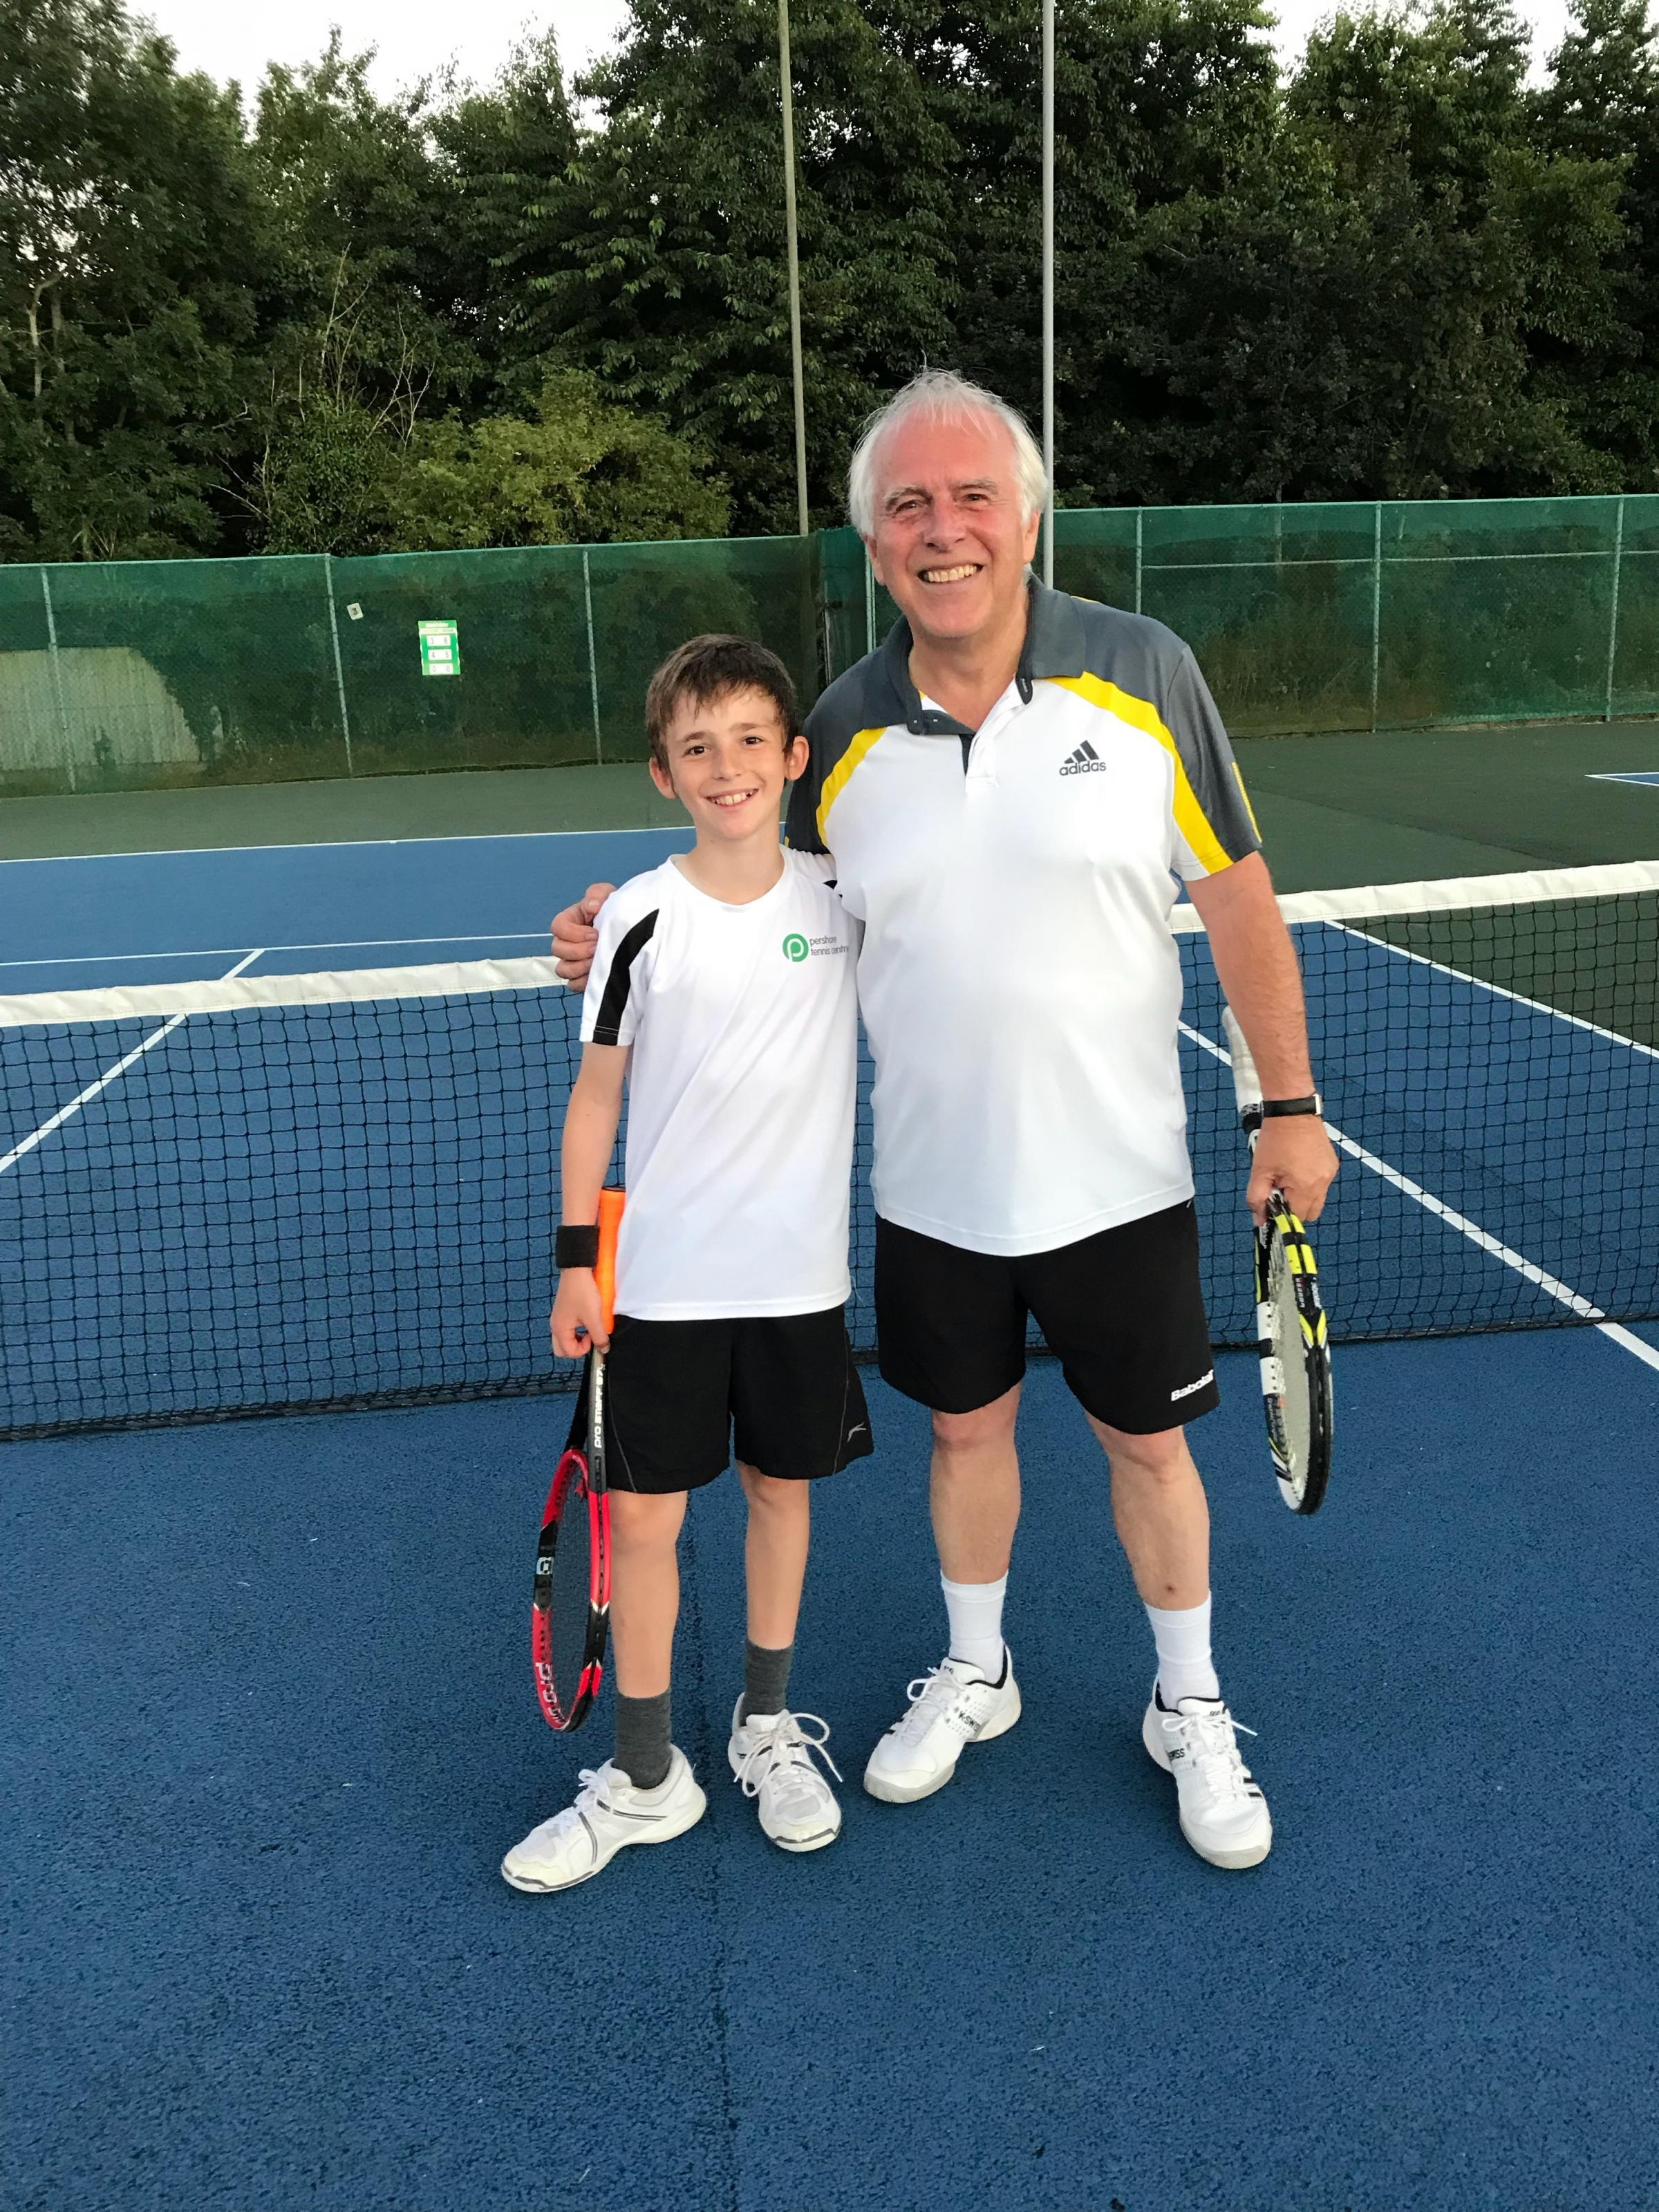 Pershore Tennis Club duo have perfect blend of youth and experience